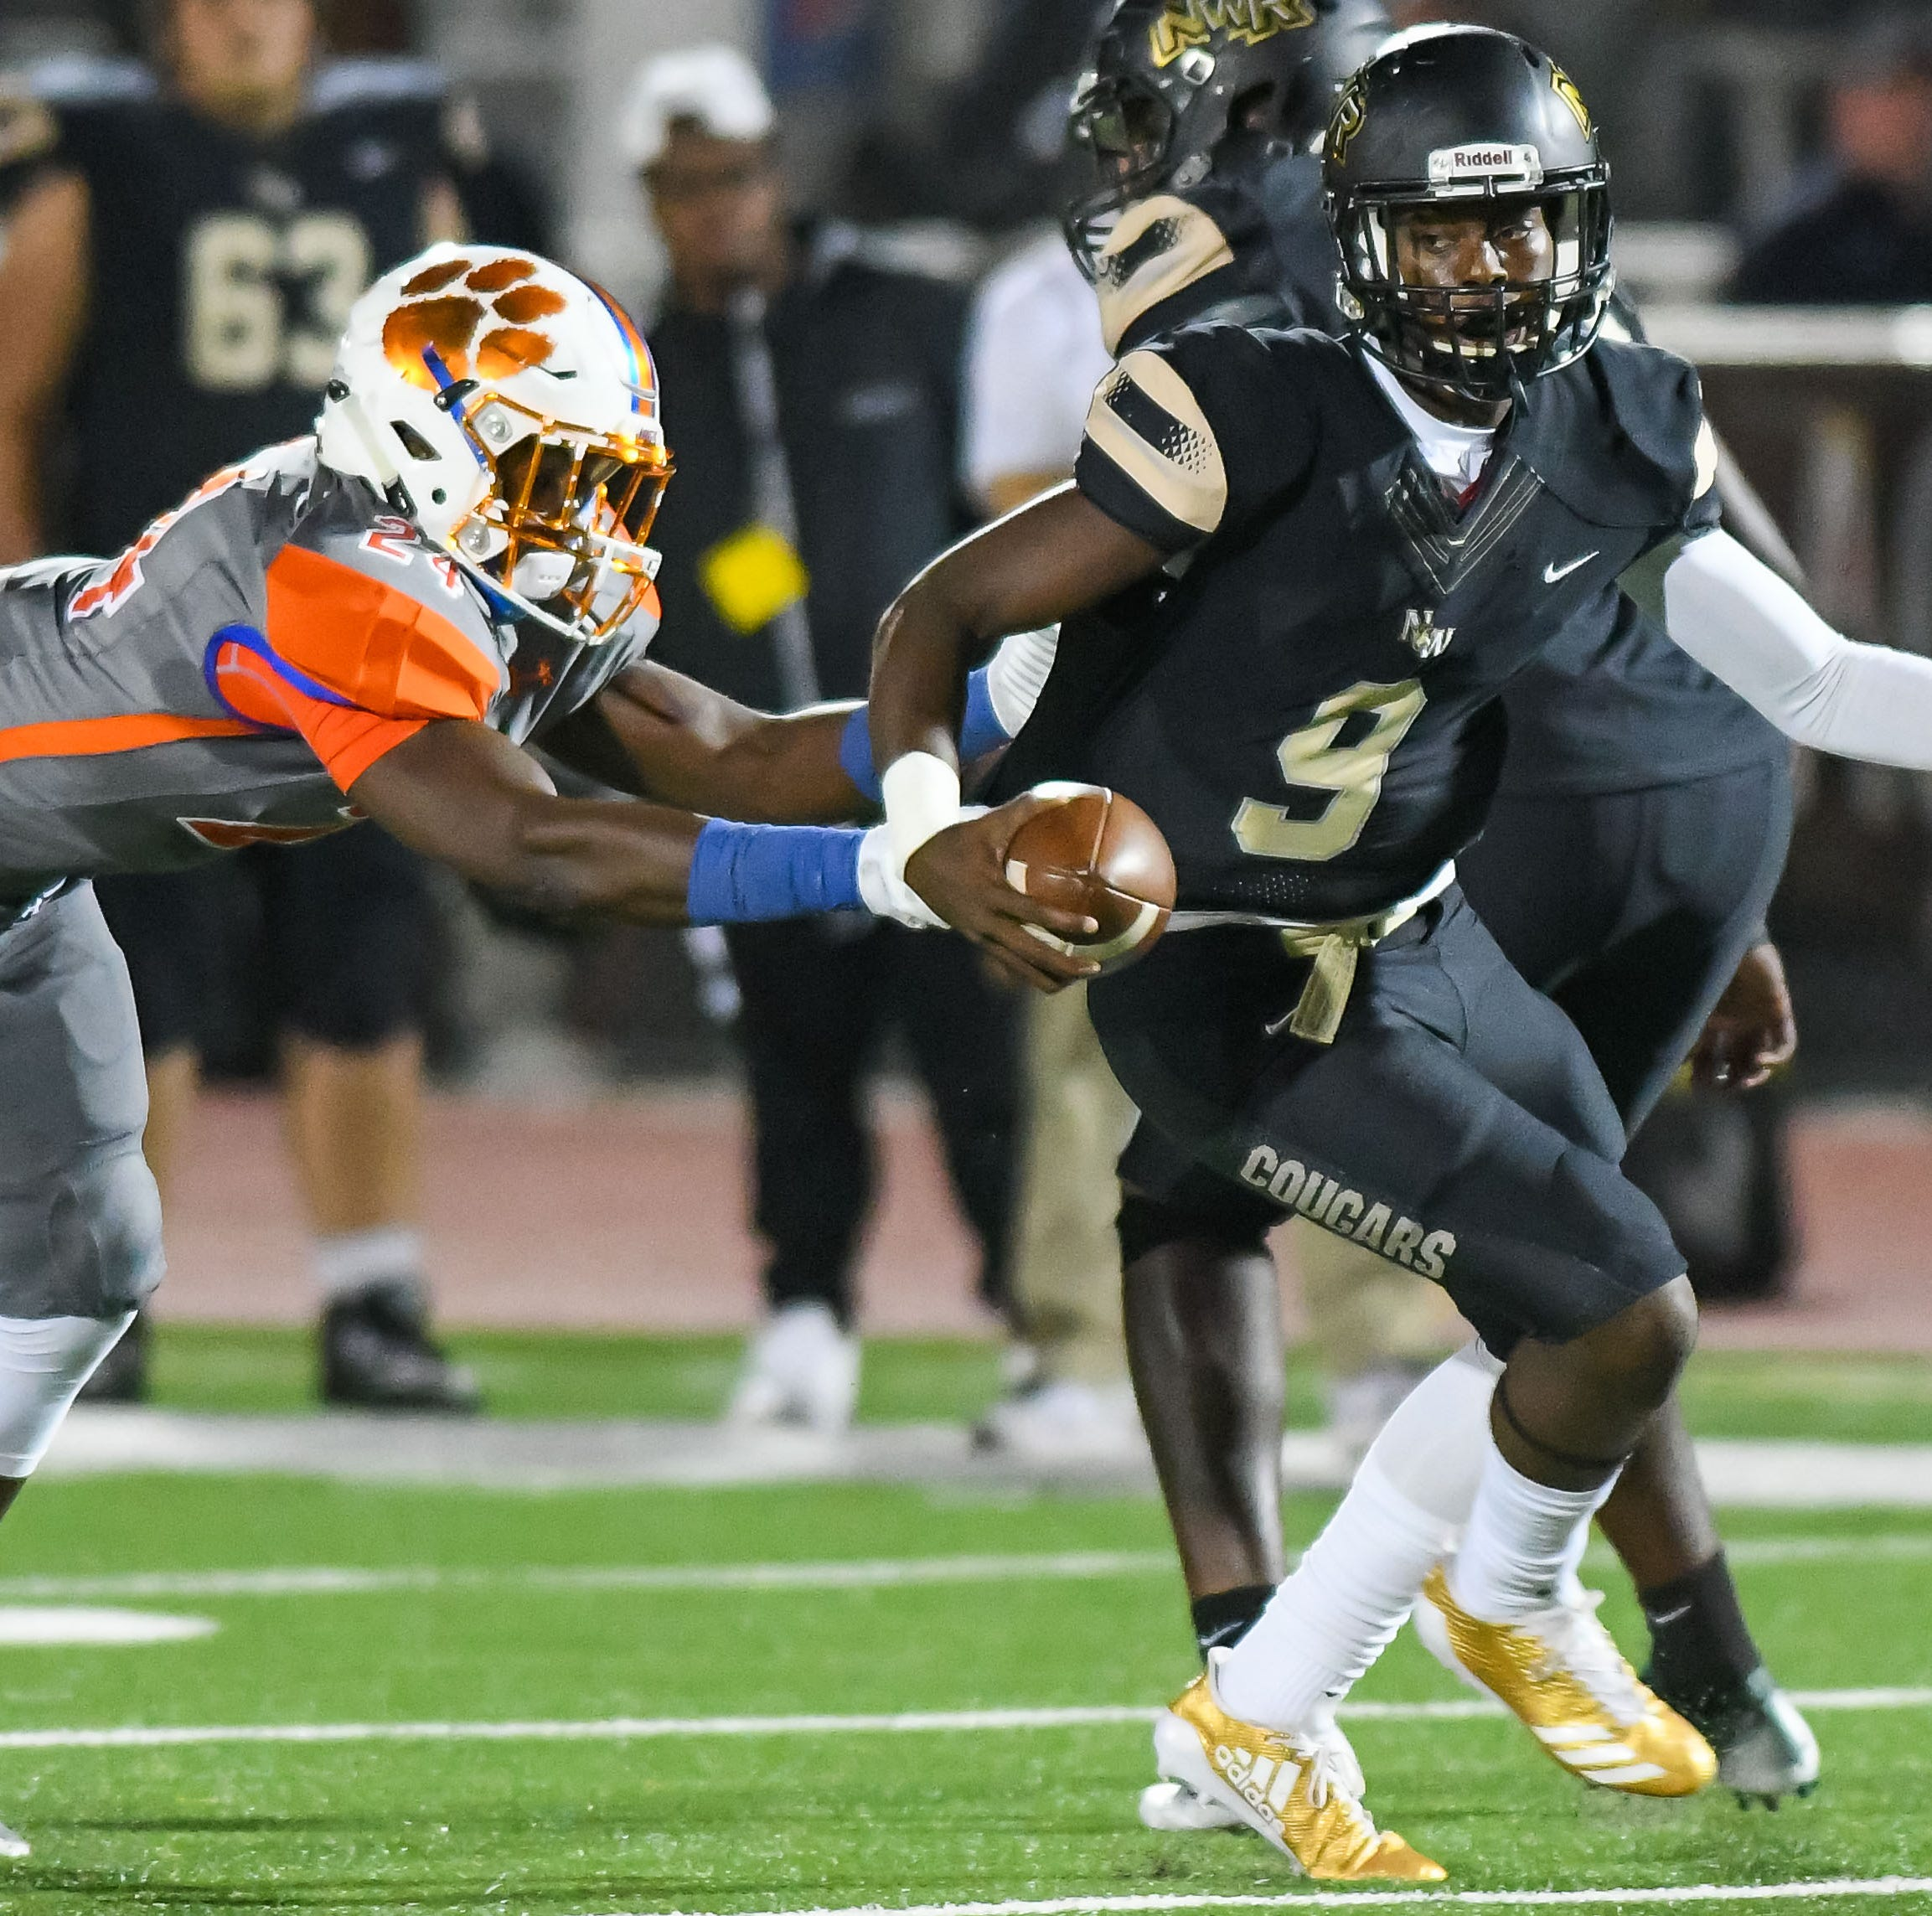 Northwest Rankin quarterback Jamari  Jones (9) runs the ball against Madison Central during game action Thursday, October 26th, 2017 in Flowood, MS.(Bob Smith-For the Clarion Ledger)